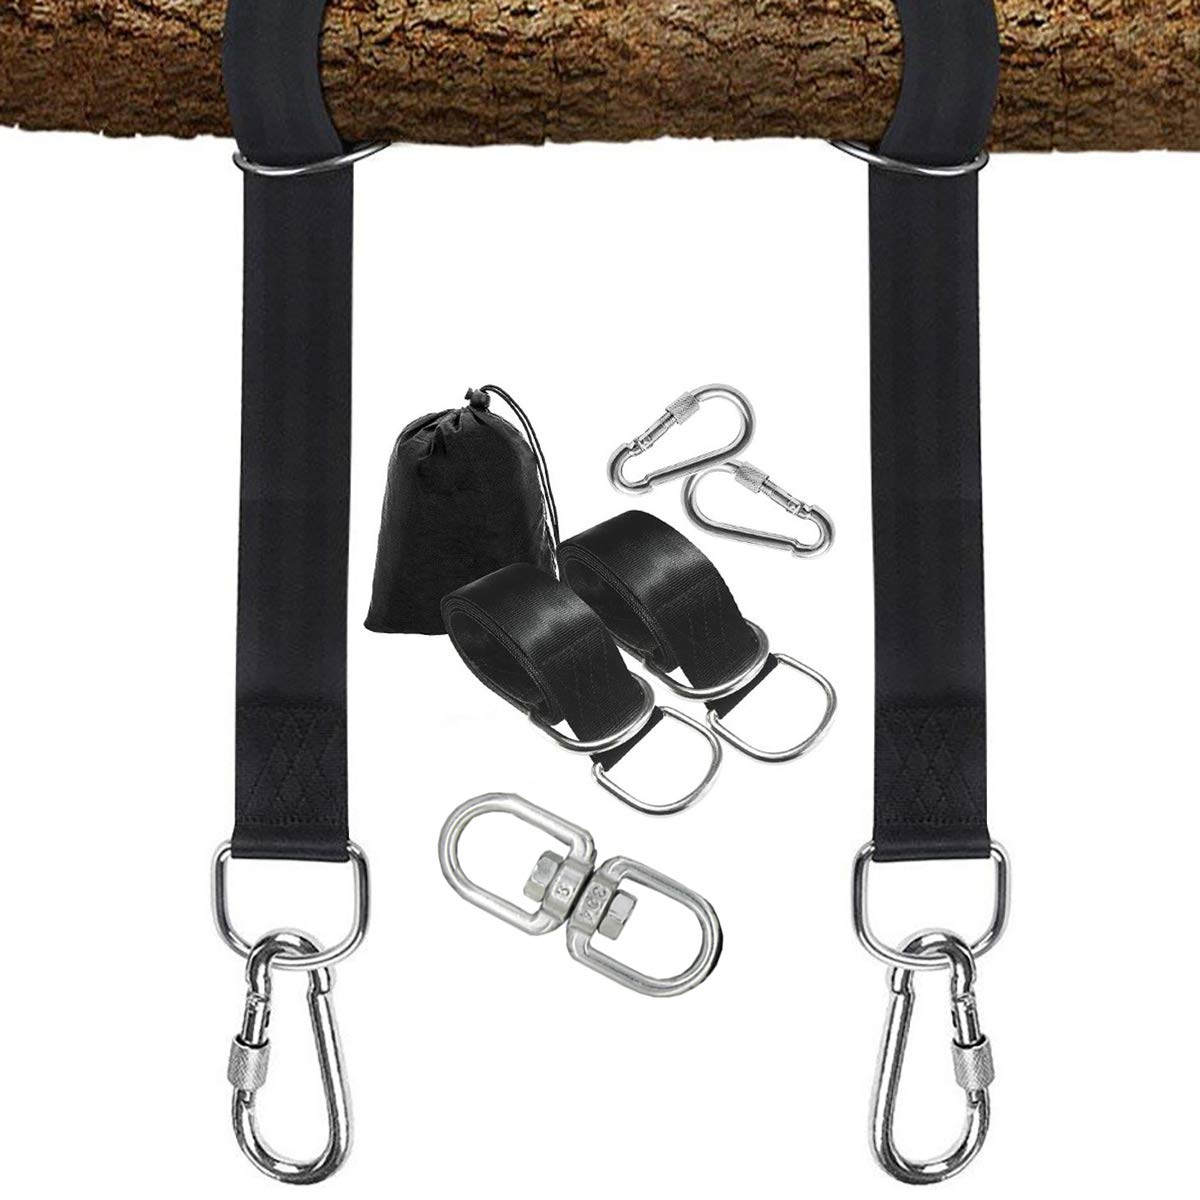 PLRB TOYS Tree Swing Hanging Straps, 2 x 6.5ft Long Straps with Safer Lock Snap Carabiner Hooks for Tree Swing & Hammocks, Perfect for Swings